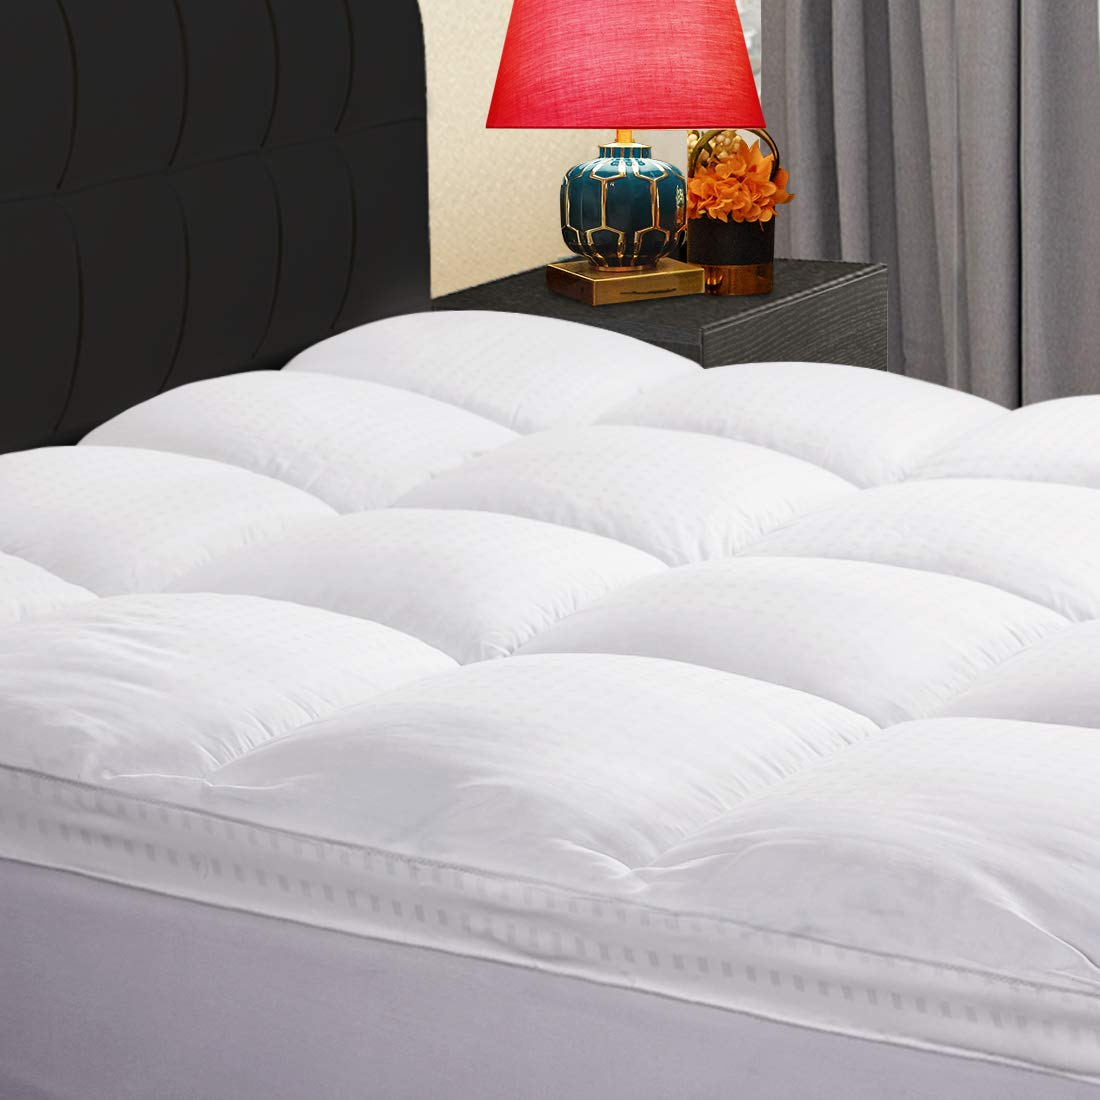 KARRISM Cooling Mattress Pad Cover Topper